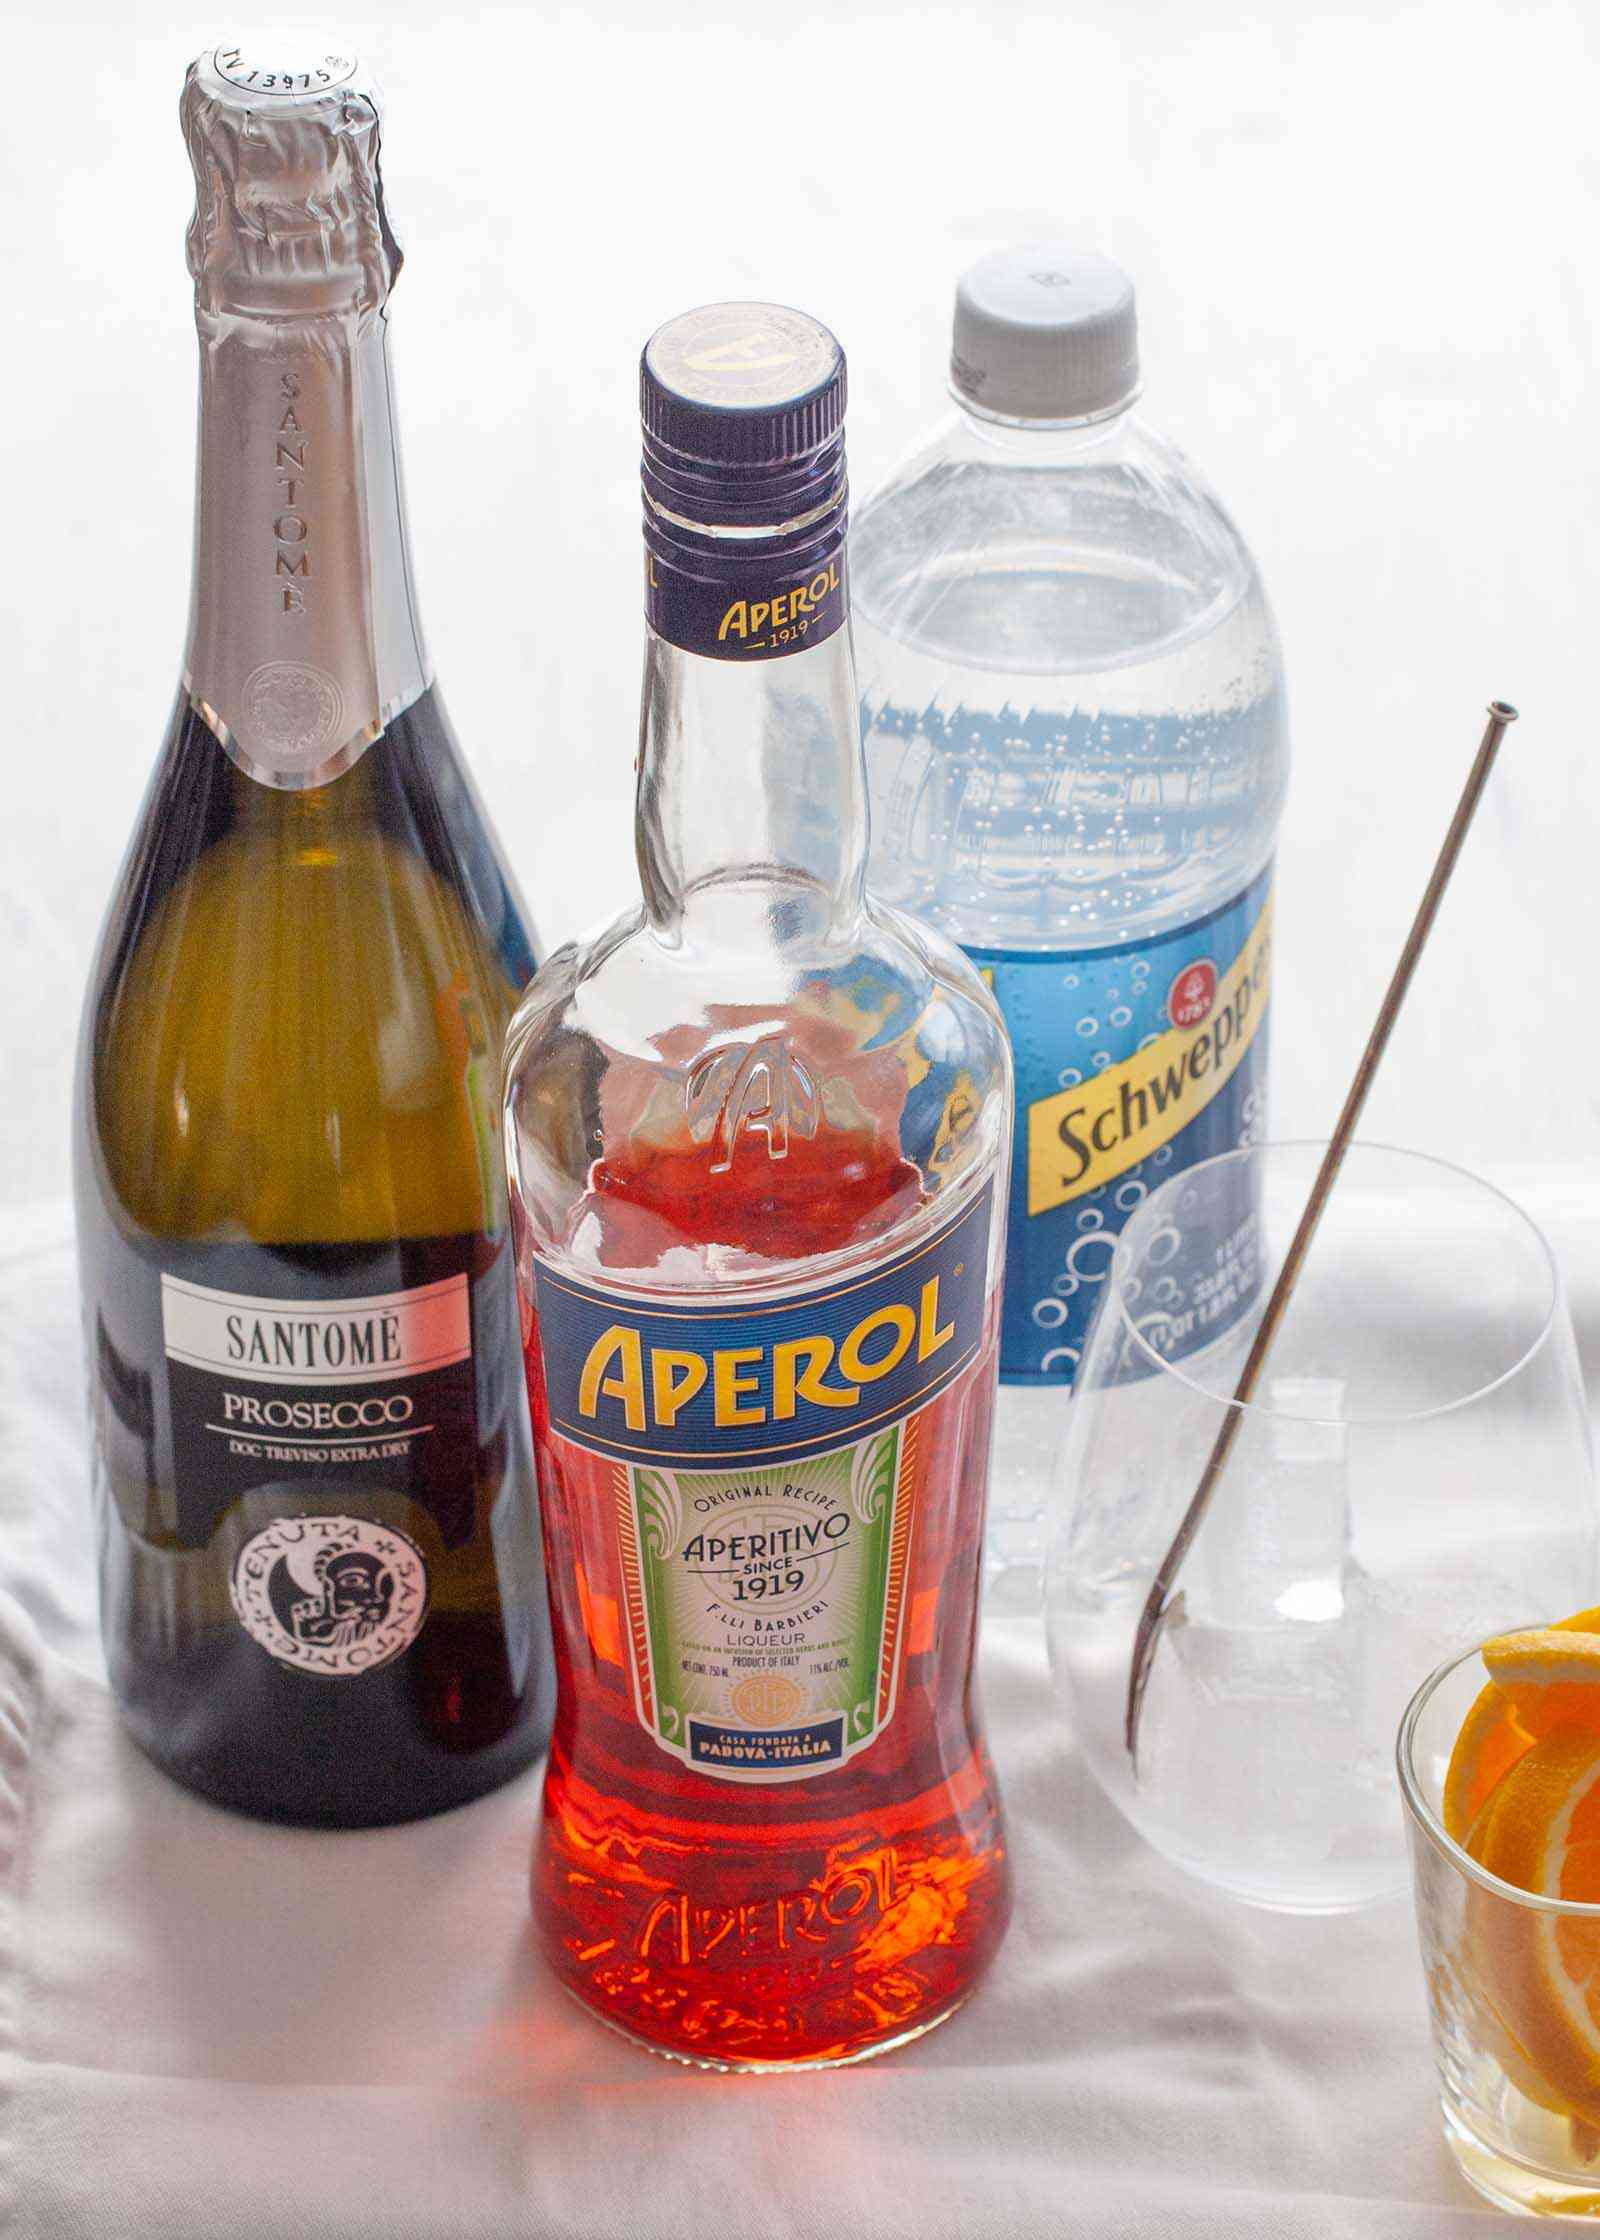 aperol spritz ingredients on a table. A bottle of aperol, prosecco, club soda and a glass with a stir stick and ice inside. A small glass of sliced oranges is in the lower right corner.